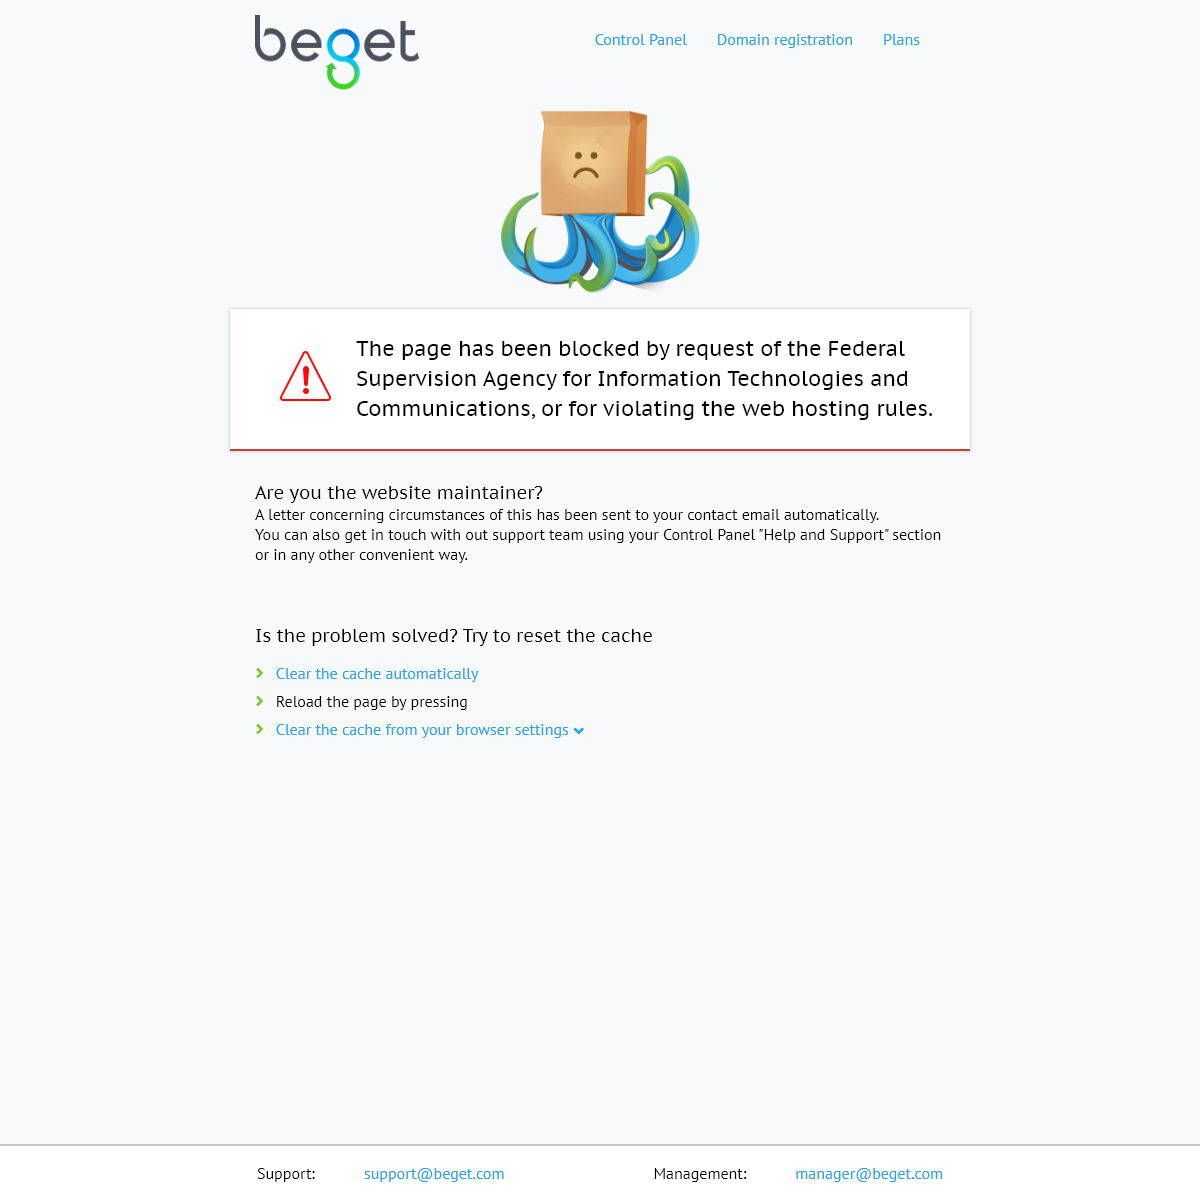 The page has been blocked by request of the Federal Supervision Agency for Information Technologies and Communications, or for v